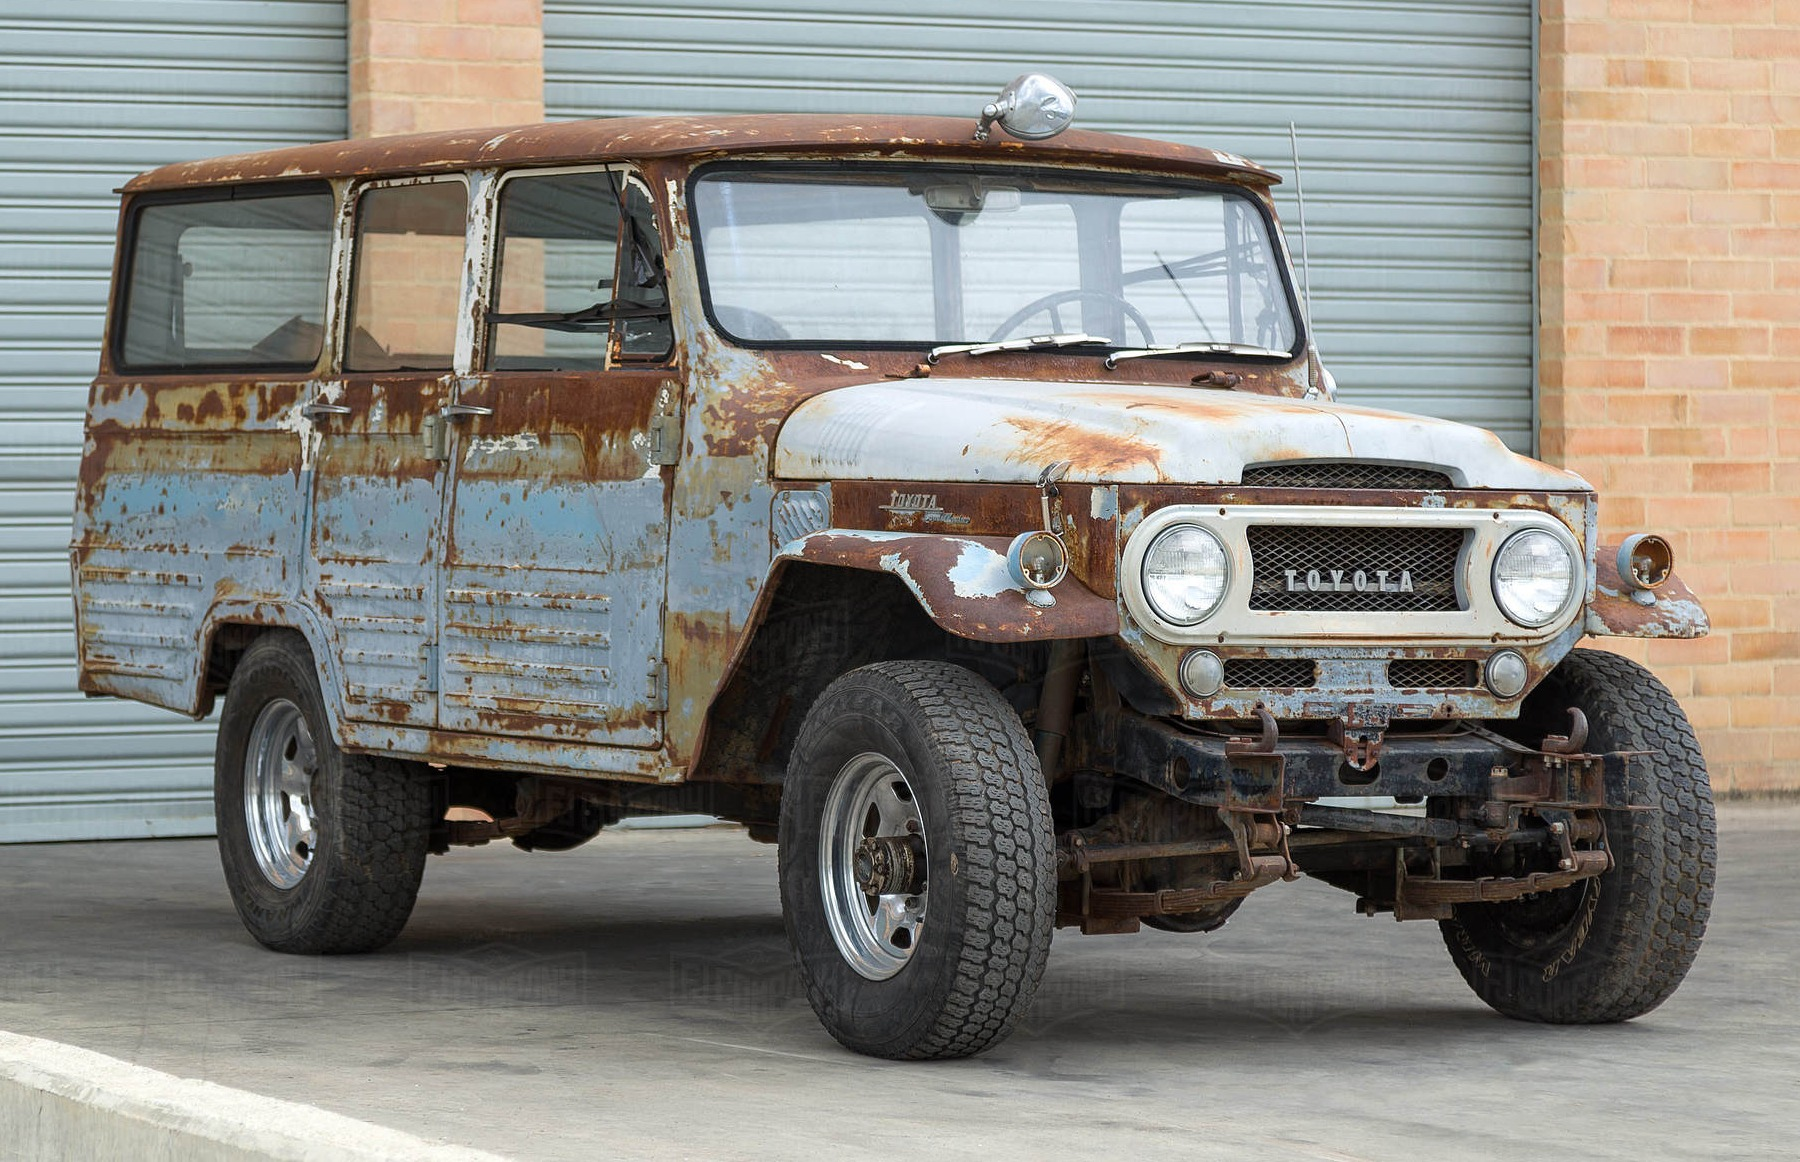 Toyota Land Cruiser FJ45V four wheel drive vehicle